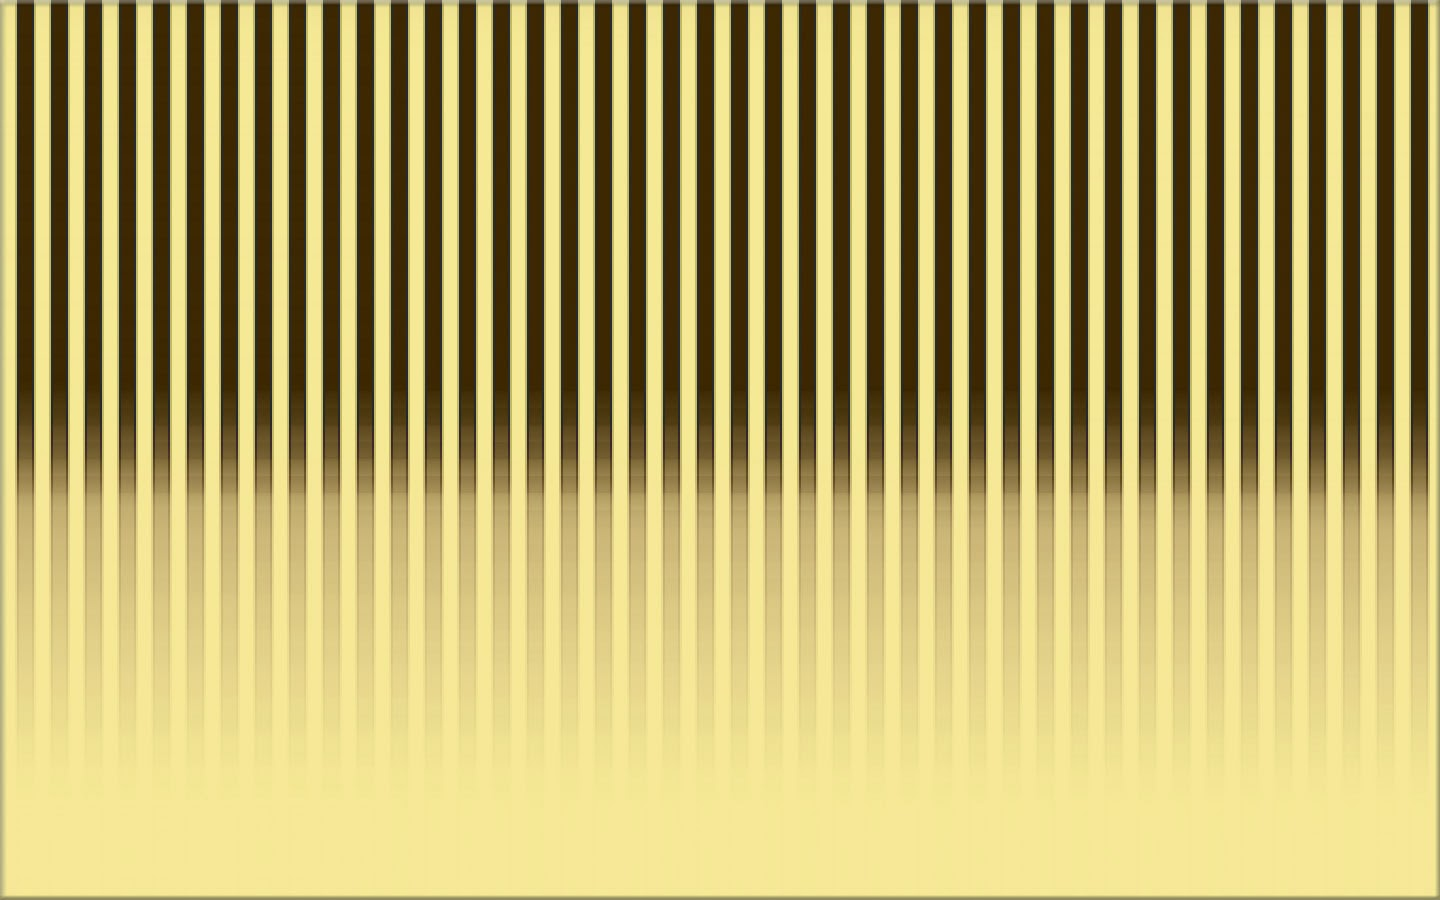 Gold Striped Wallpaper